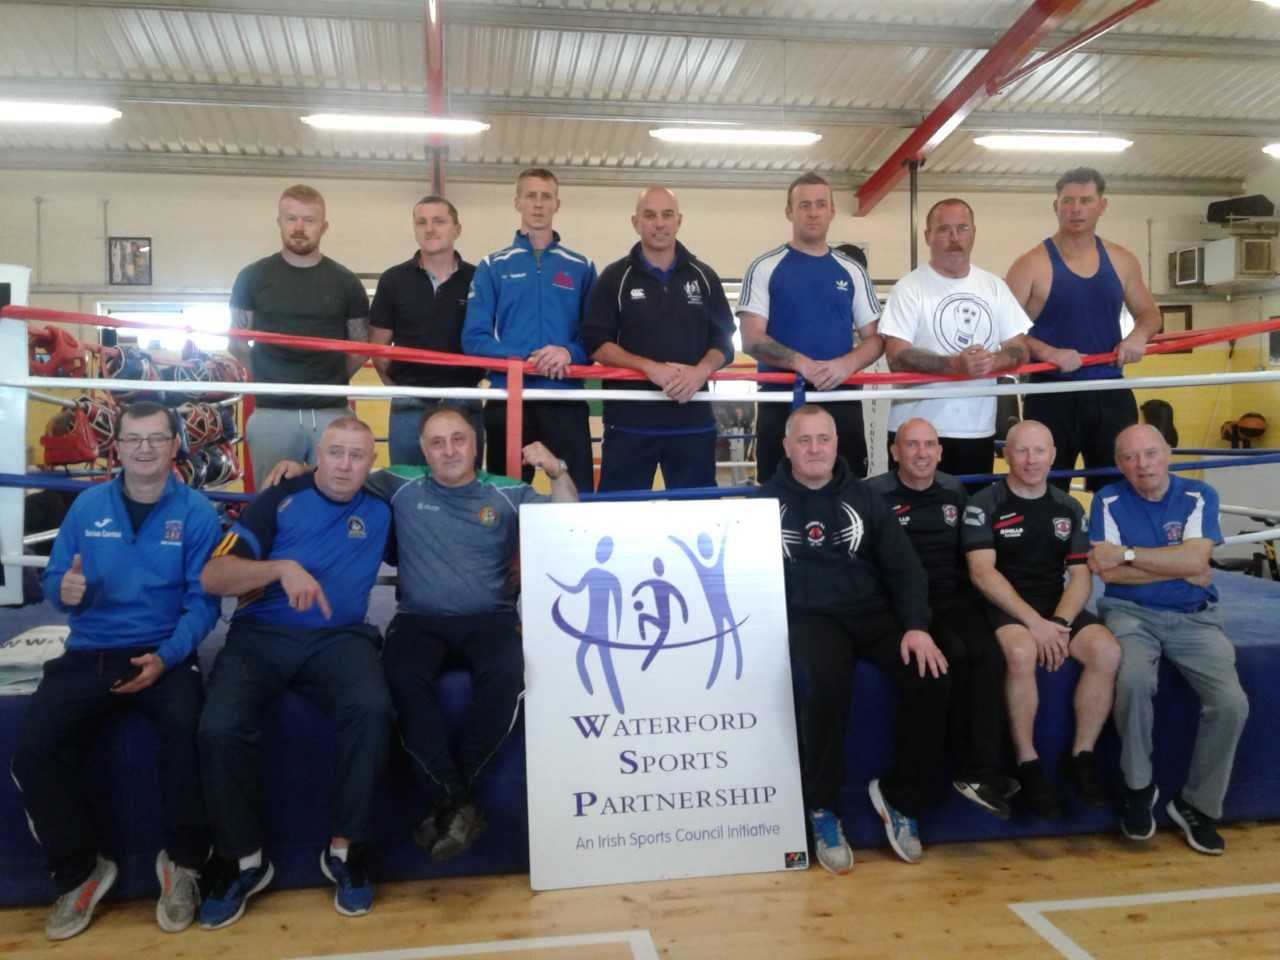 Successful Boxing workshop organised by Waterford Sports Partnership